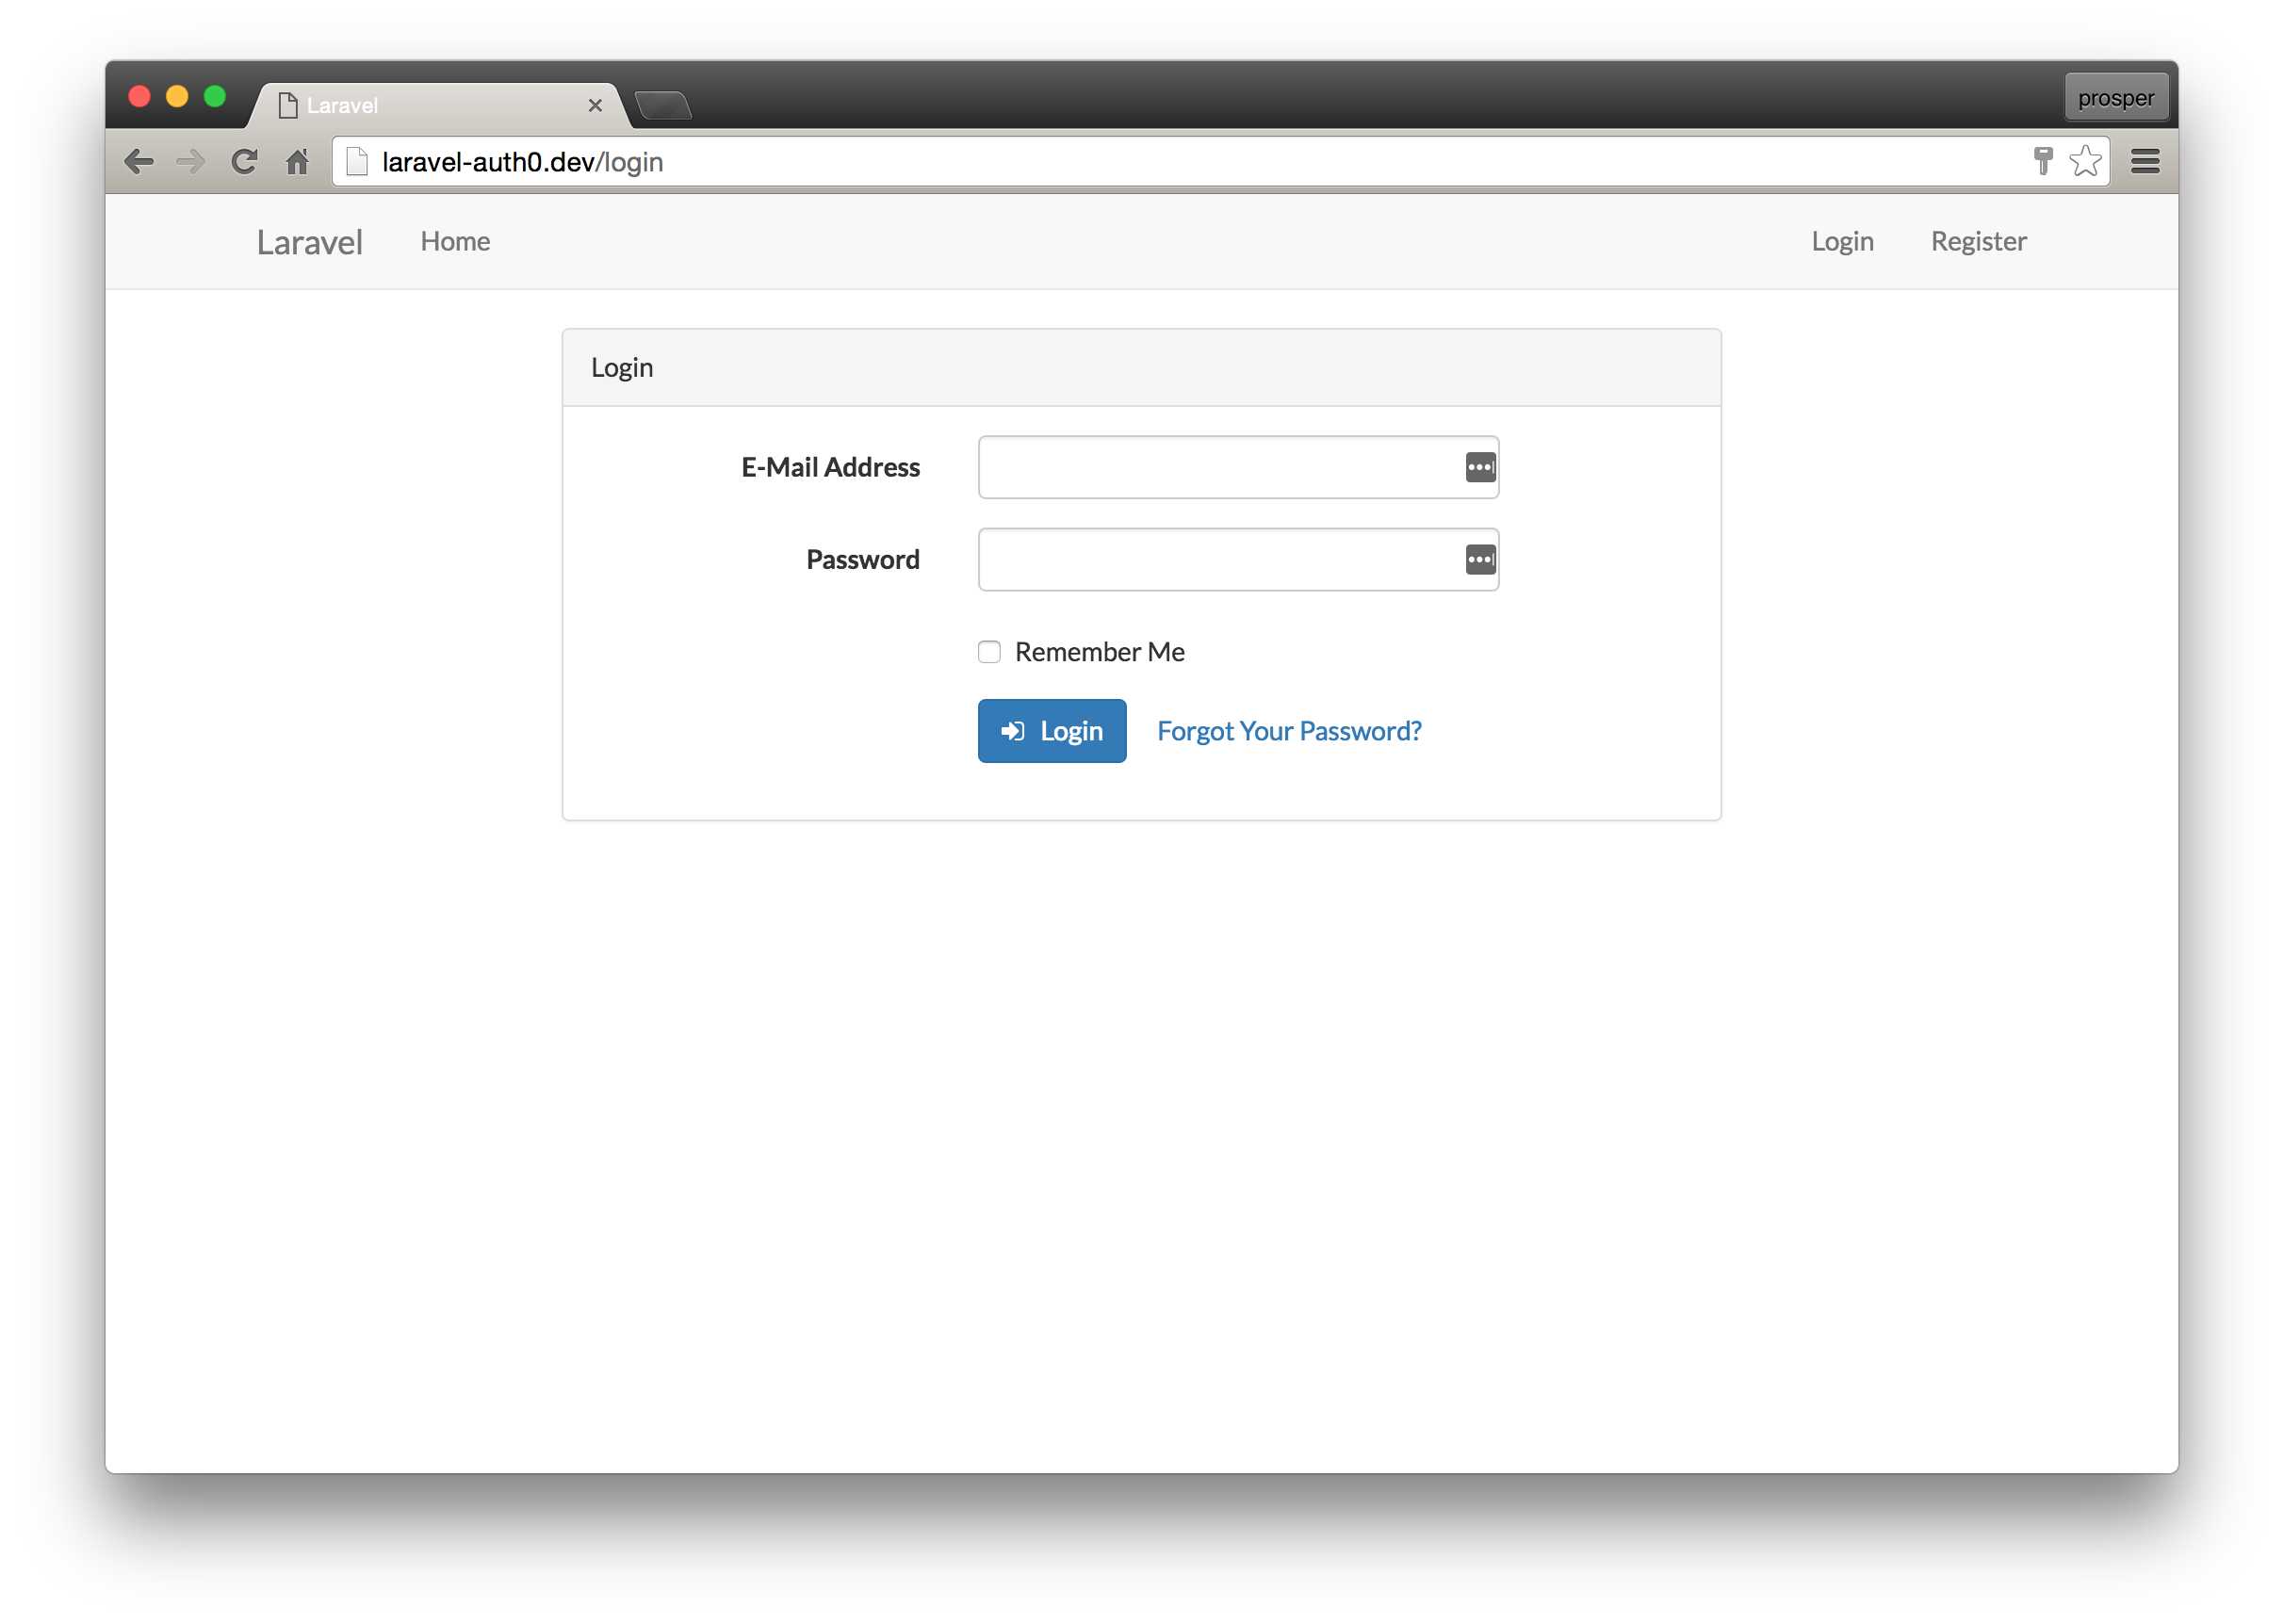 Creating your first Laravel app and adding authentication